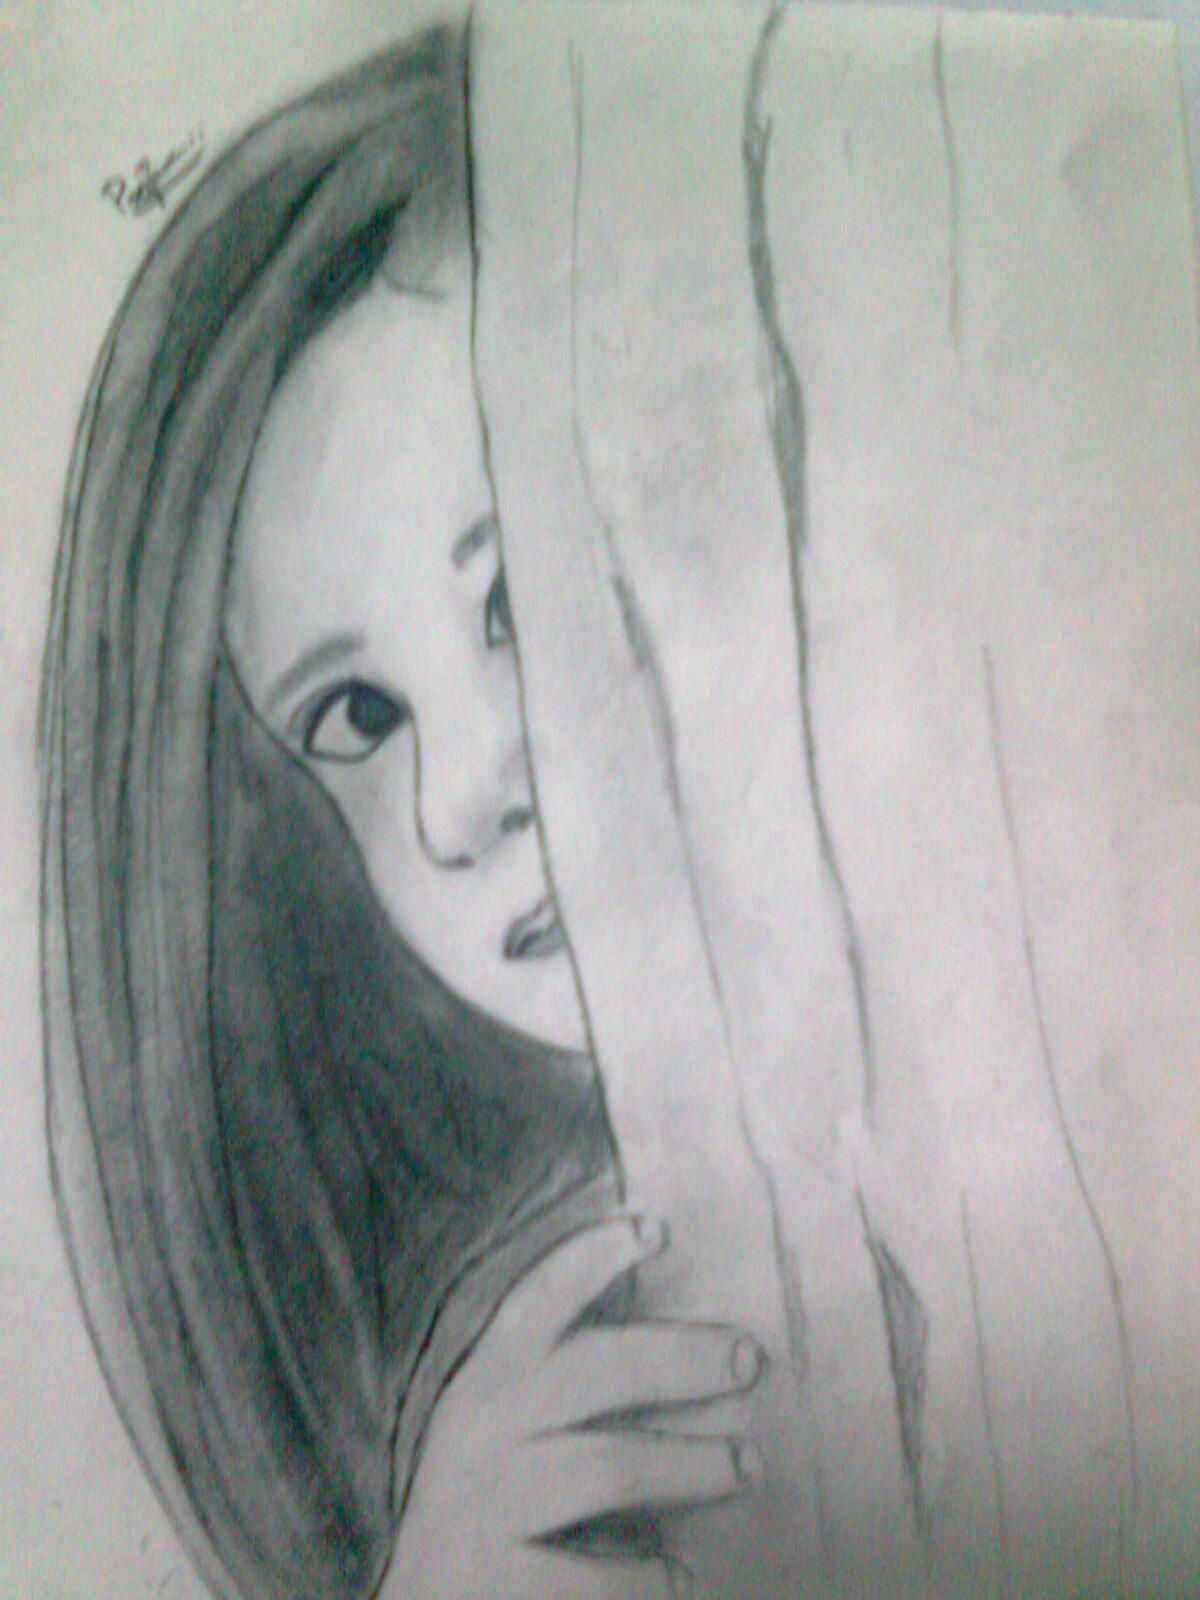 sketches of love - Google Search | Easy drawings sketches ...